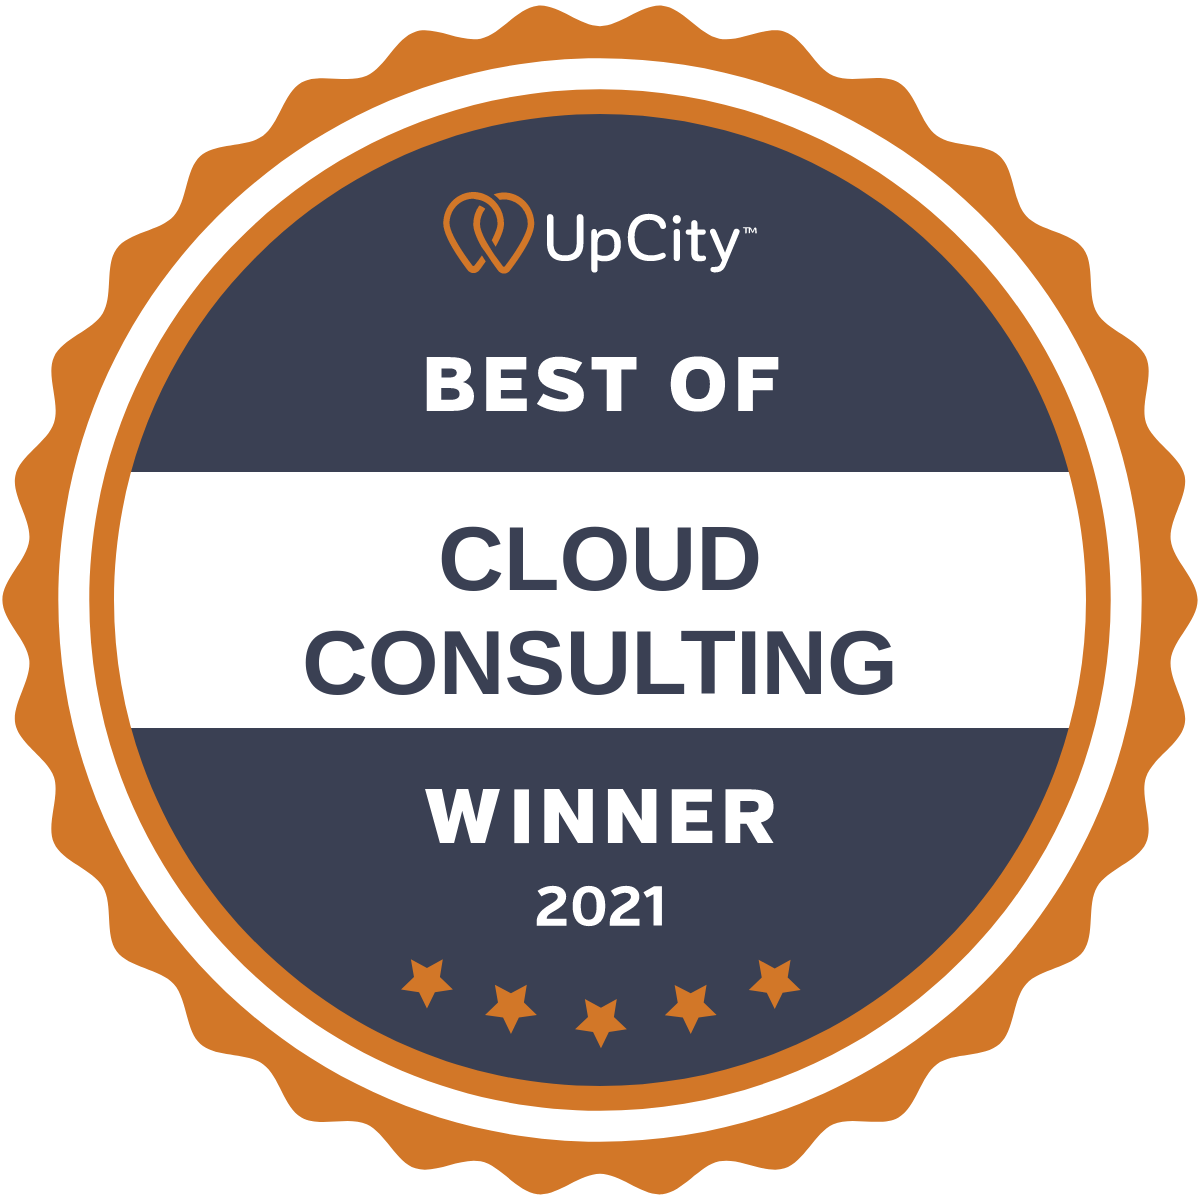 2021 Best of Cloud Consulting